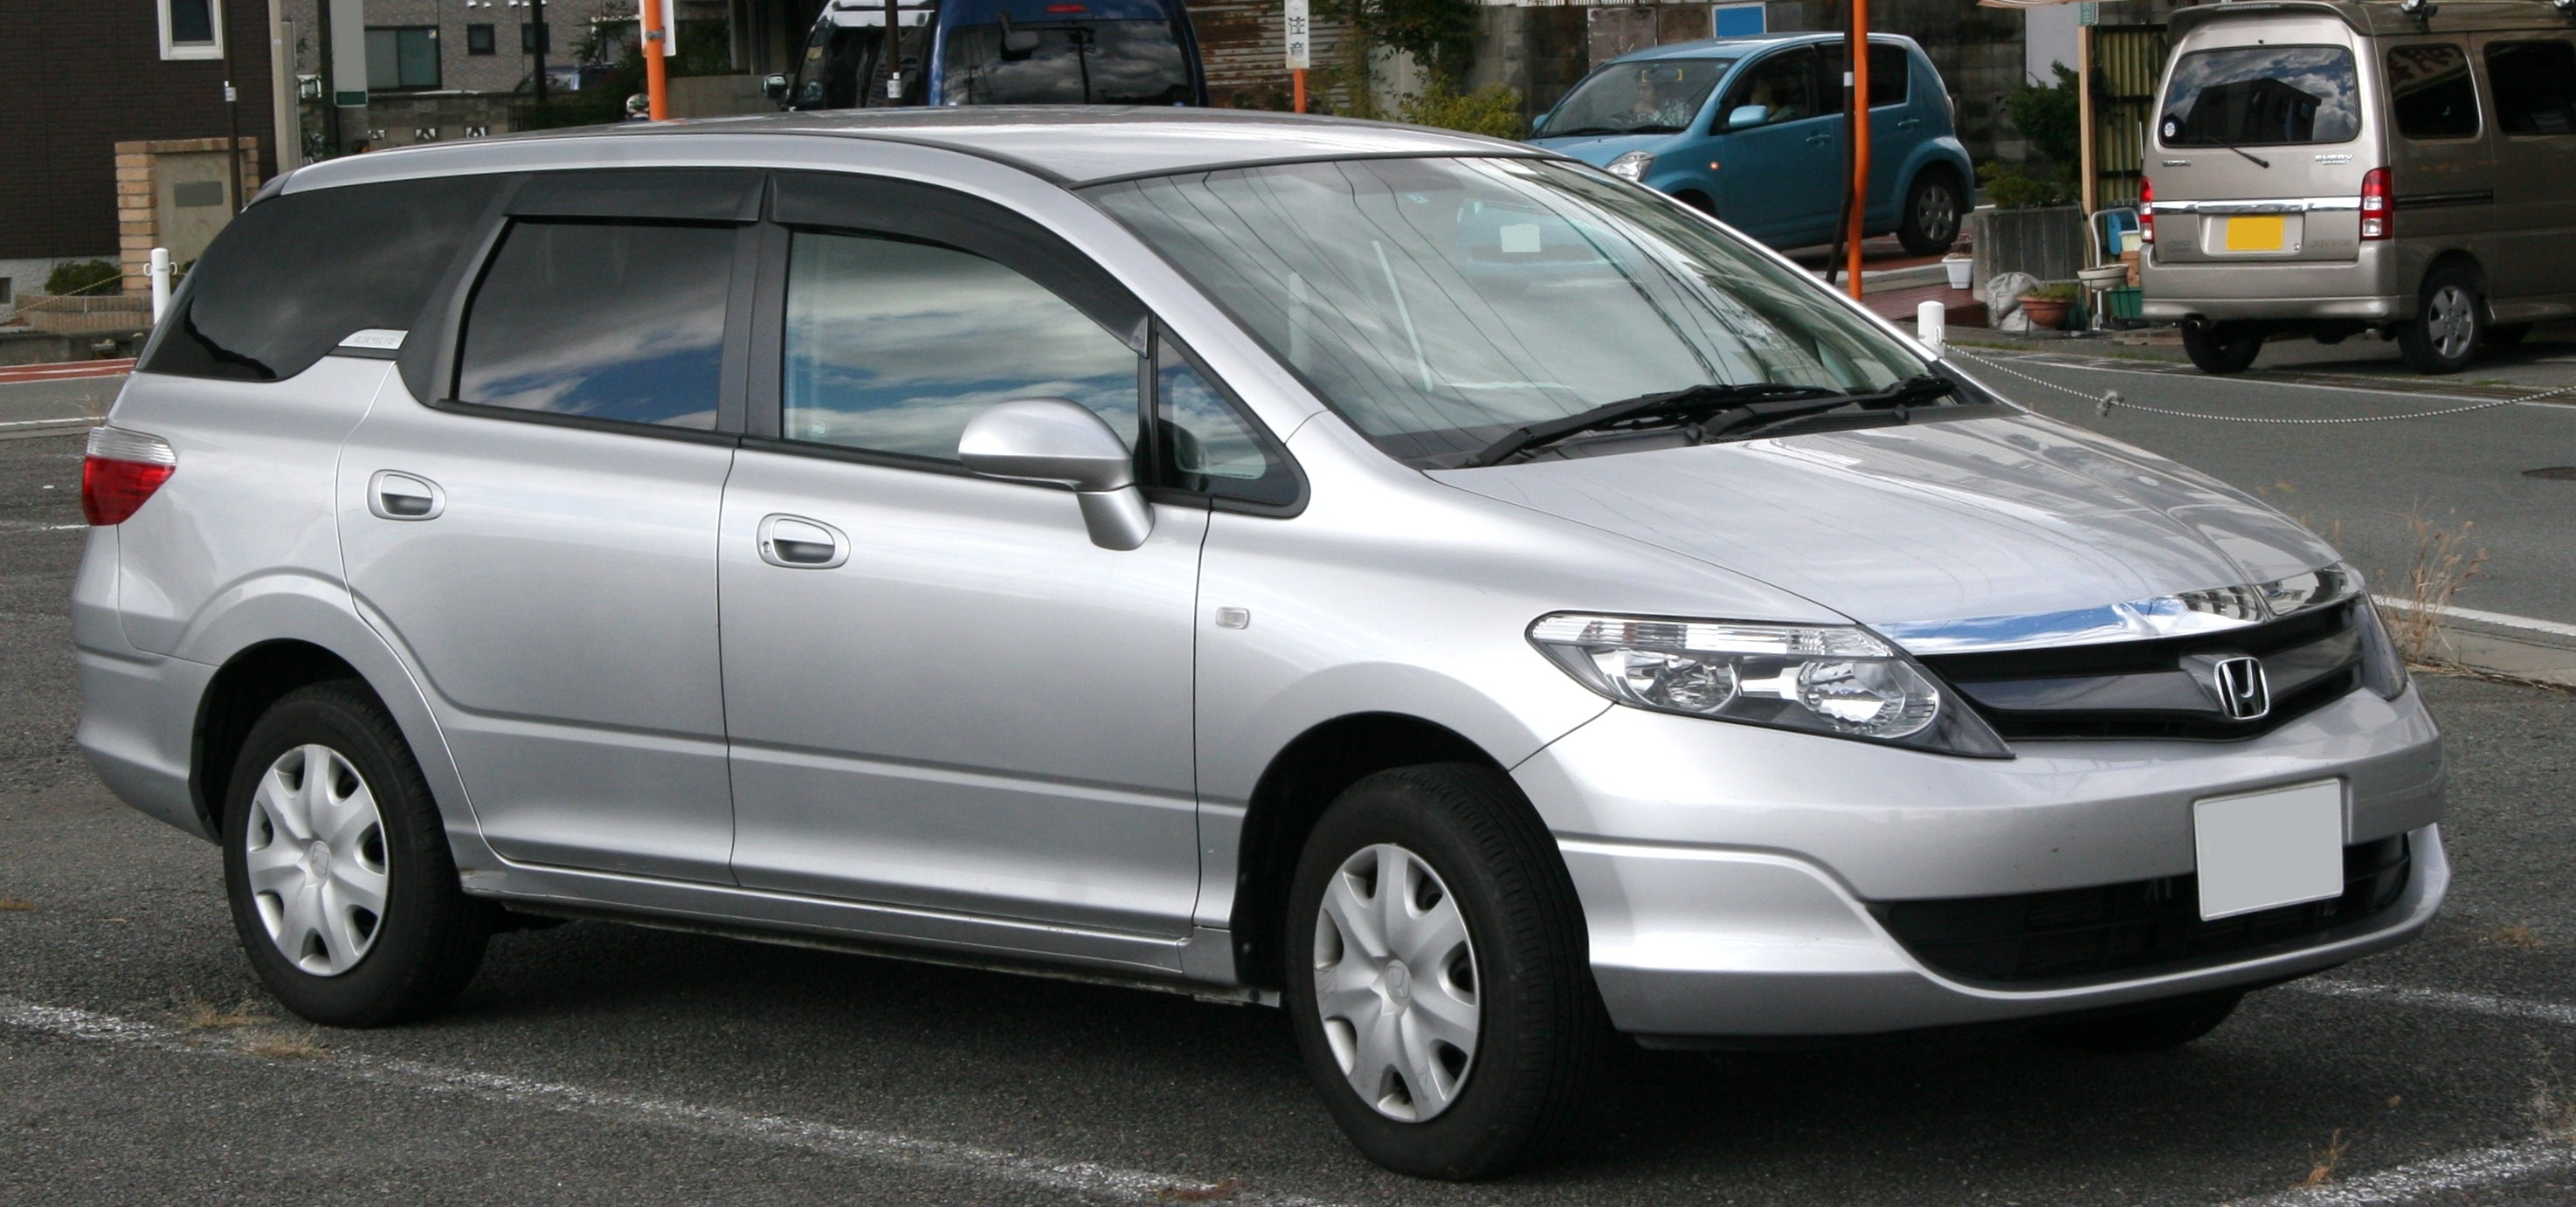 70kmh speed limit for 8-seater passenger cars will be removed in Singapore from February 1, 2019. Photo courtesy: Wikimedia